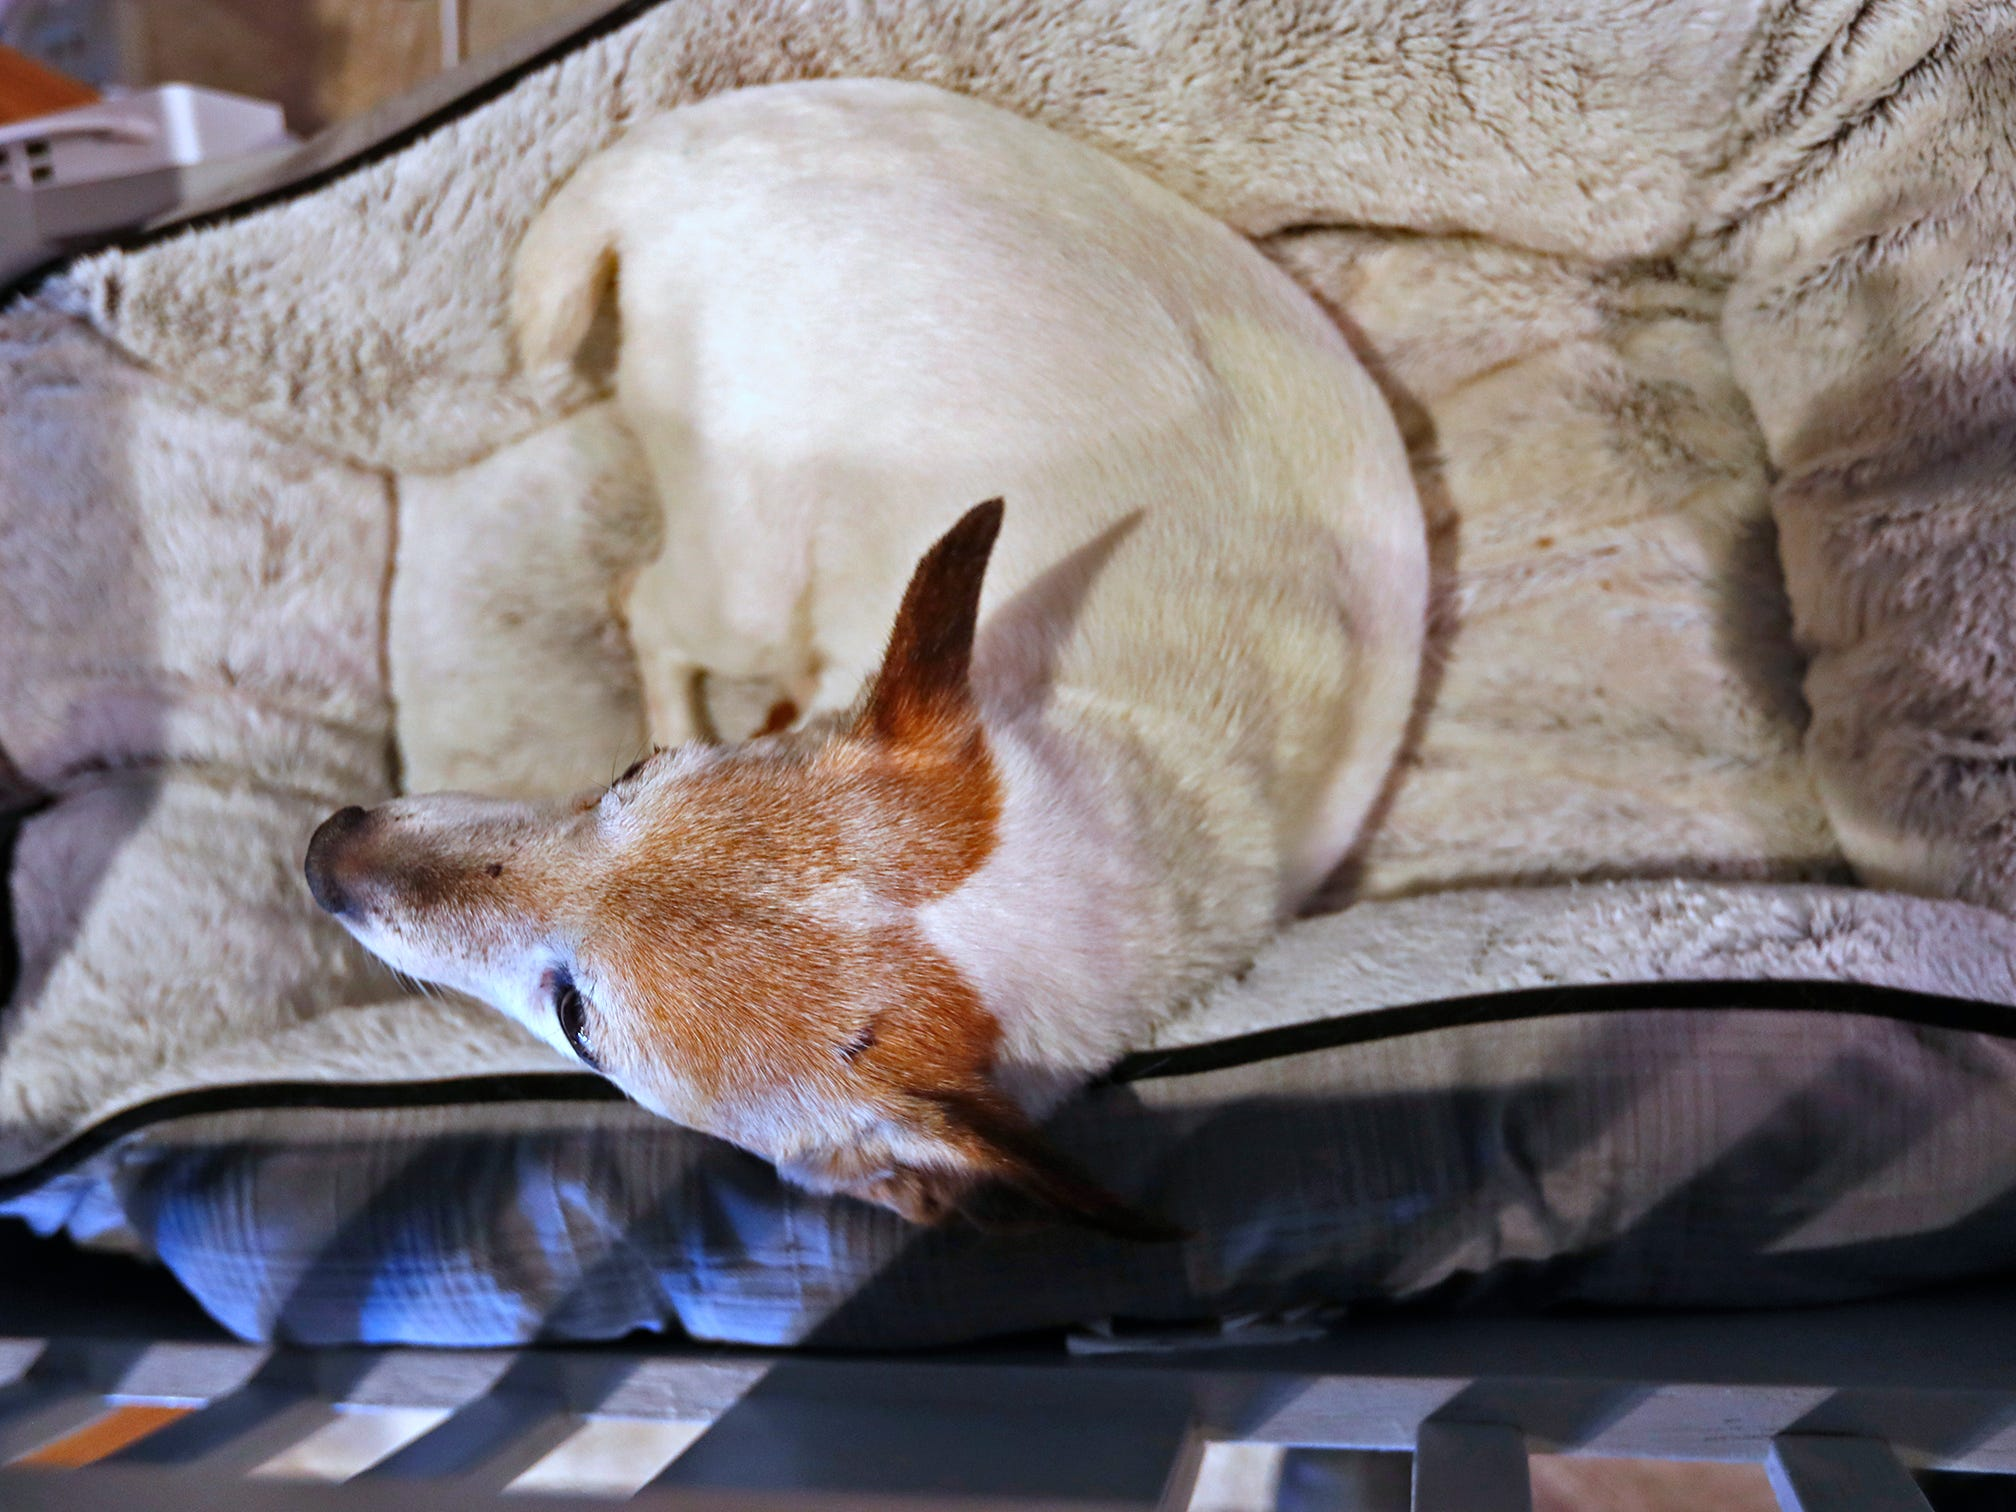 Sally, a 15-year-old Jack Russell sleeps at ReCraft, Tuesday, Dec. 11, 2018.  The dog is owned by the store's owner, Bethany Daugherty.  ReCraft was born out of Daugherty's love of crafting and her interest in environmental activism.  At the secondhand craft and hobby store, Daugherty also teaches workshops.  Sustainability and environmentalism are a focus of the store.